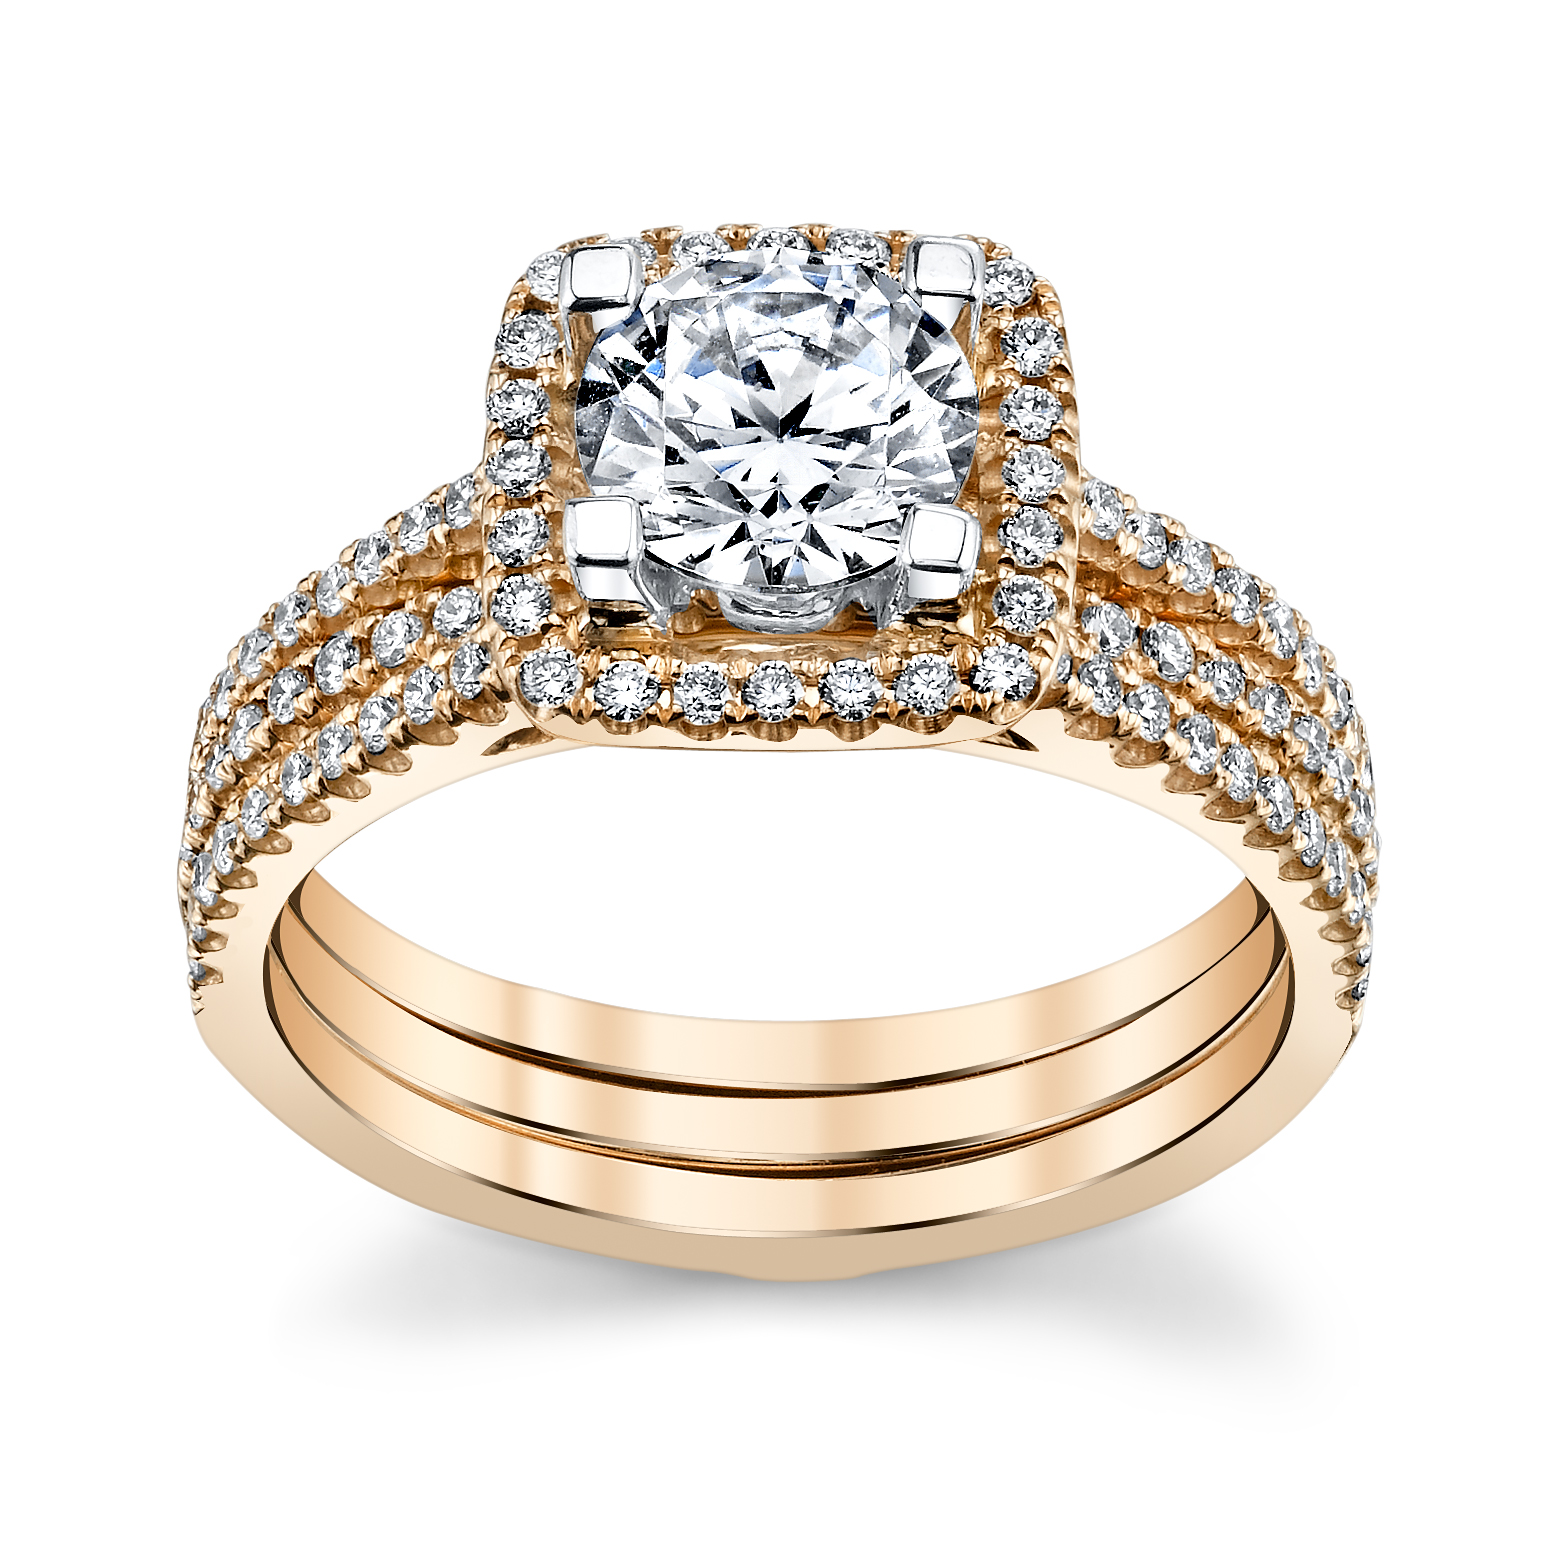 5 Rose Gold Engagement Rings She ll Love Robbins Brothers Blog